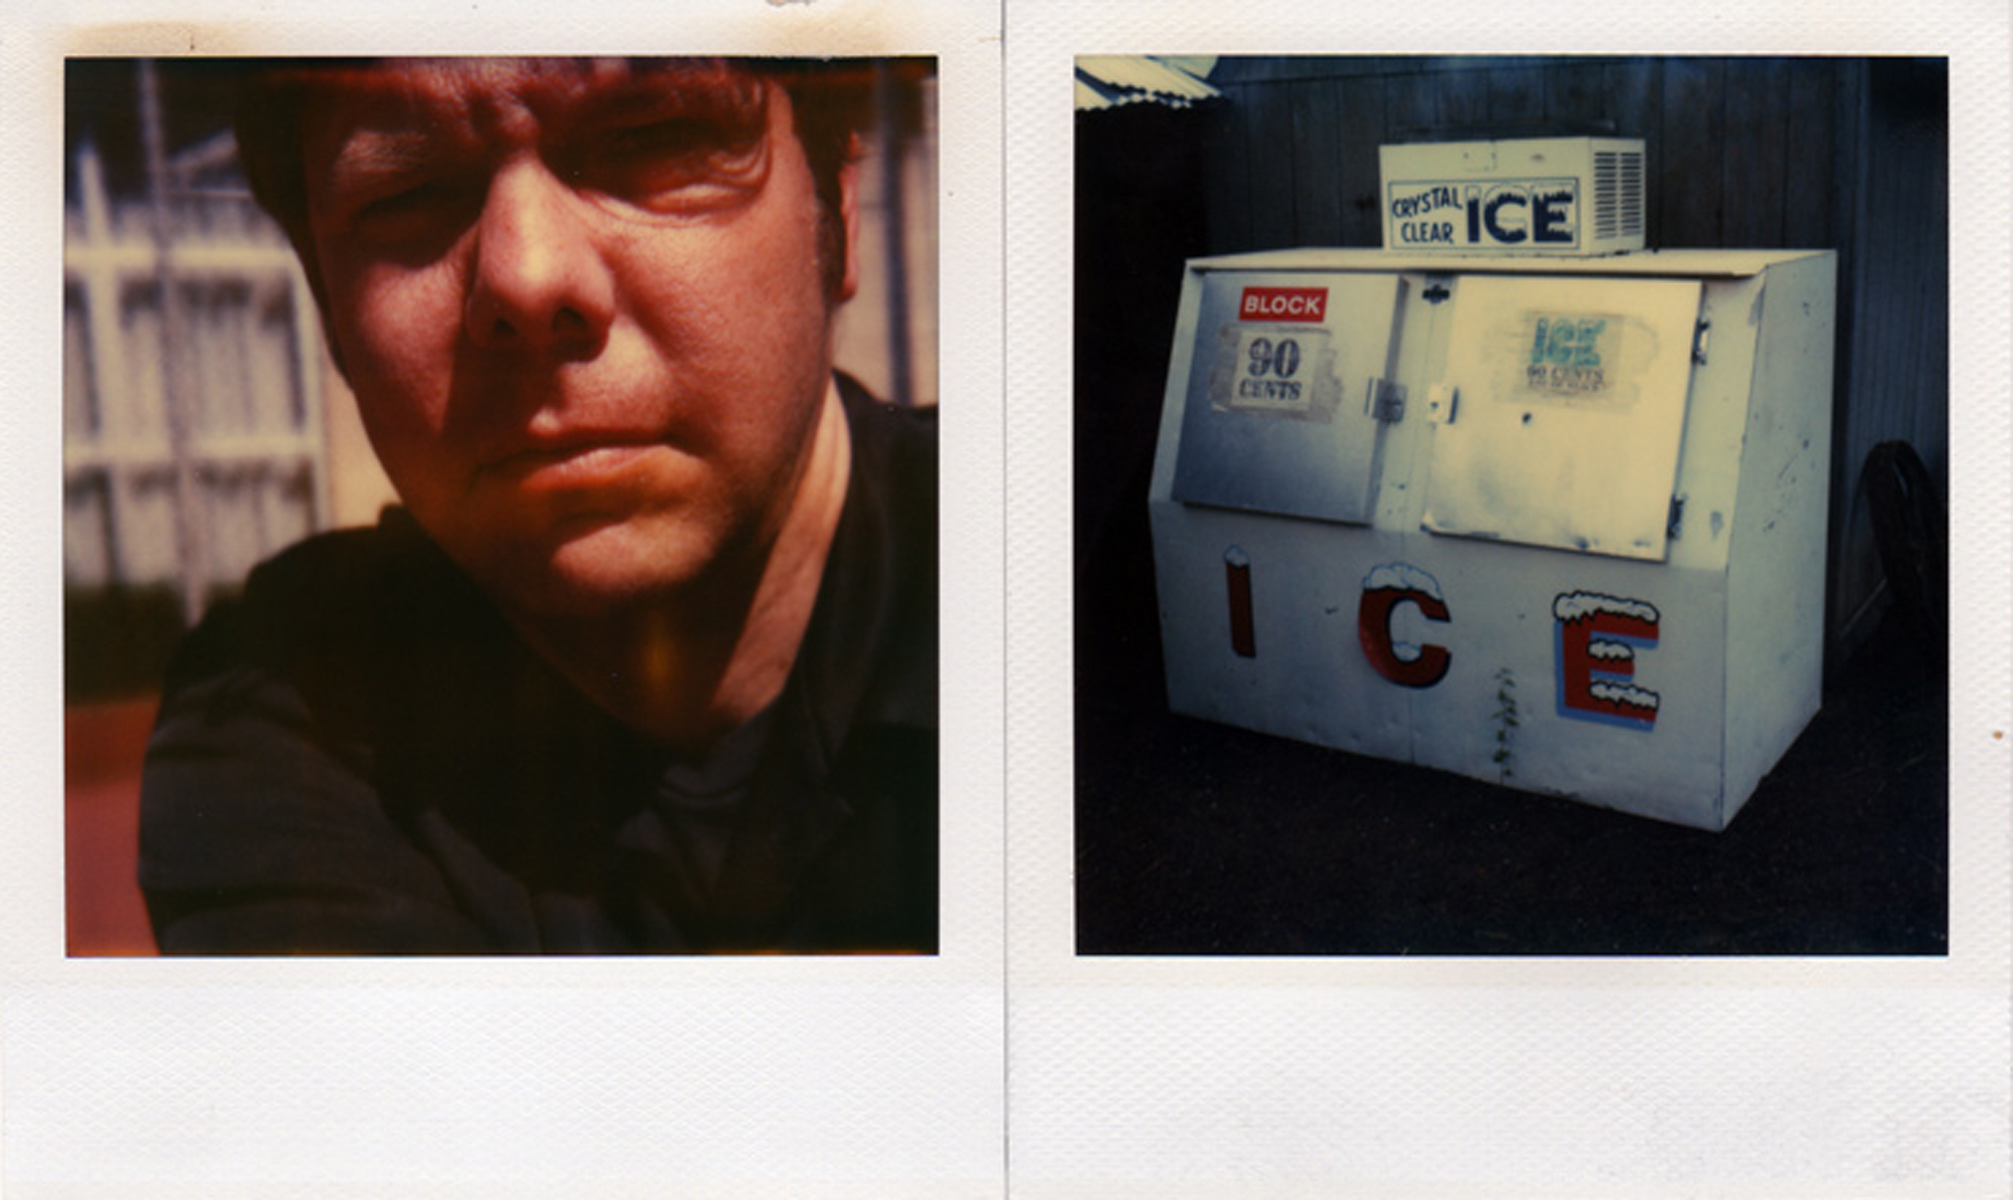 Swollen eye, Paris, France, 2001 (left); Ice Machine, Arizona, 2004 (right).